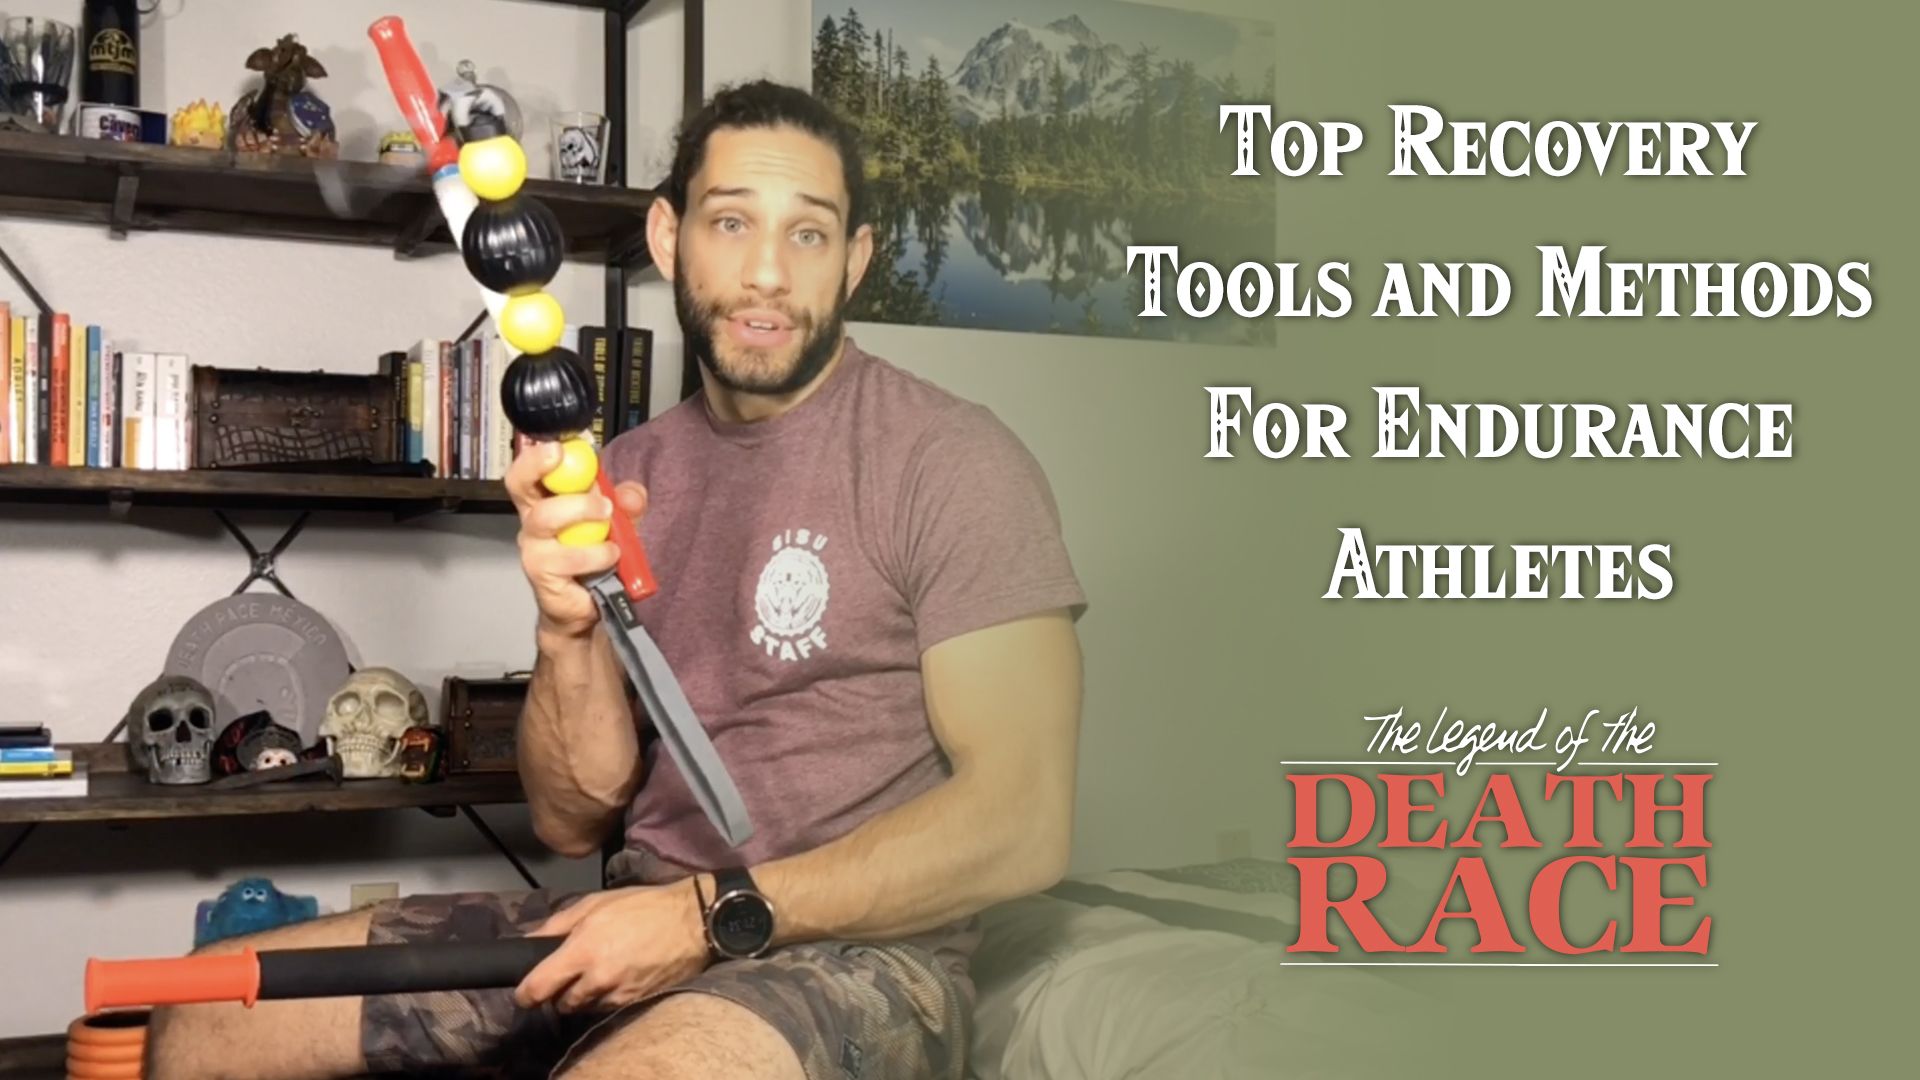 The Top 10 Recovery Tools and Methods for the Endurance Athlete